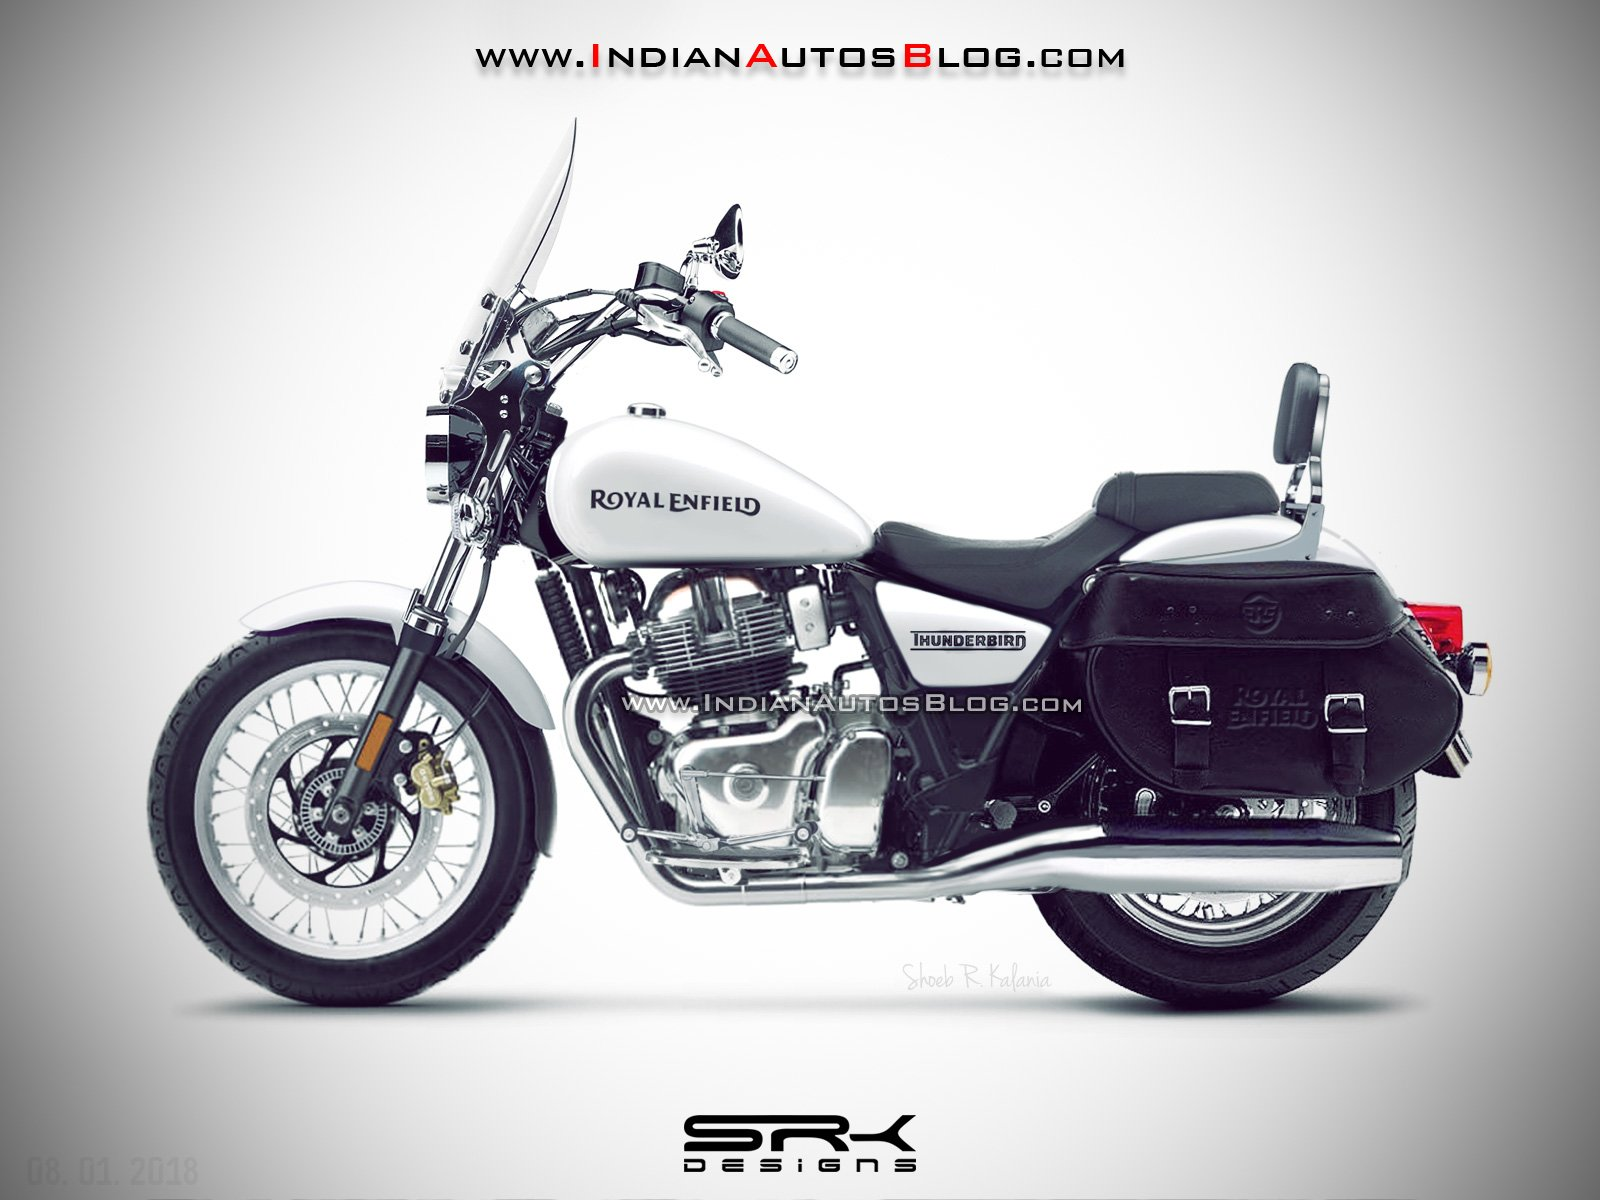 Old School Motorcycles >> Royal Enfield Thunderbird 650 - Price, Features, Launch Date